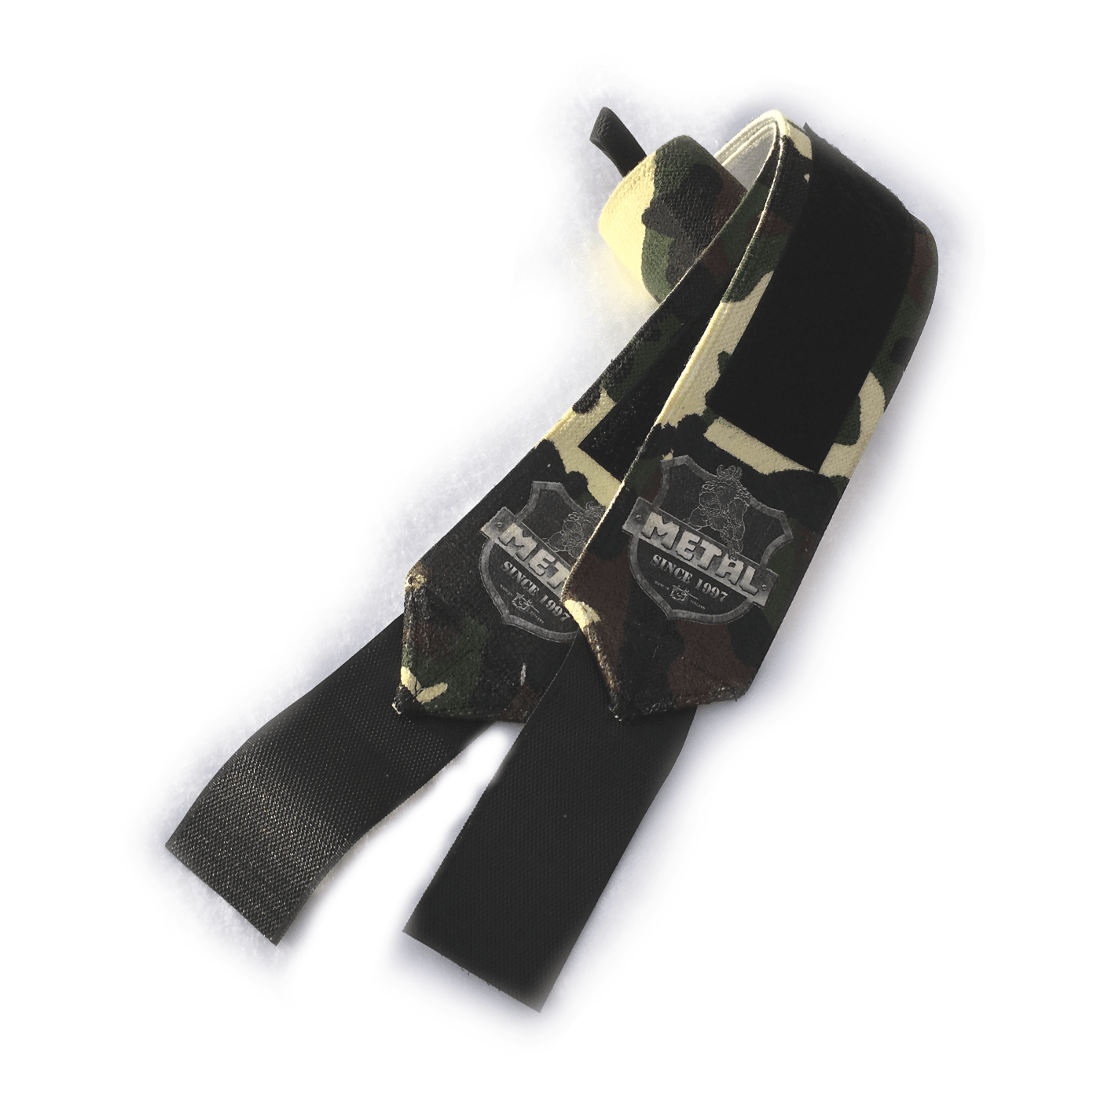 METAL Mystical Wrist Wraps - woodland camo (pár)